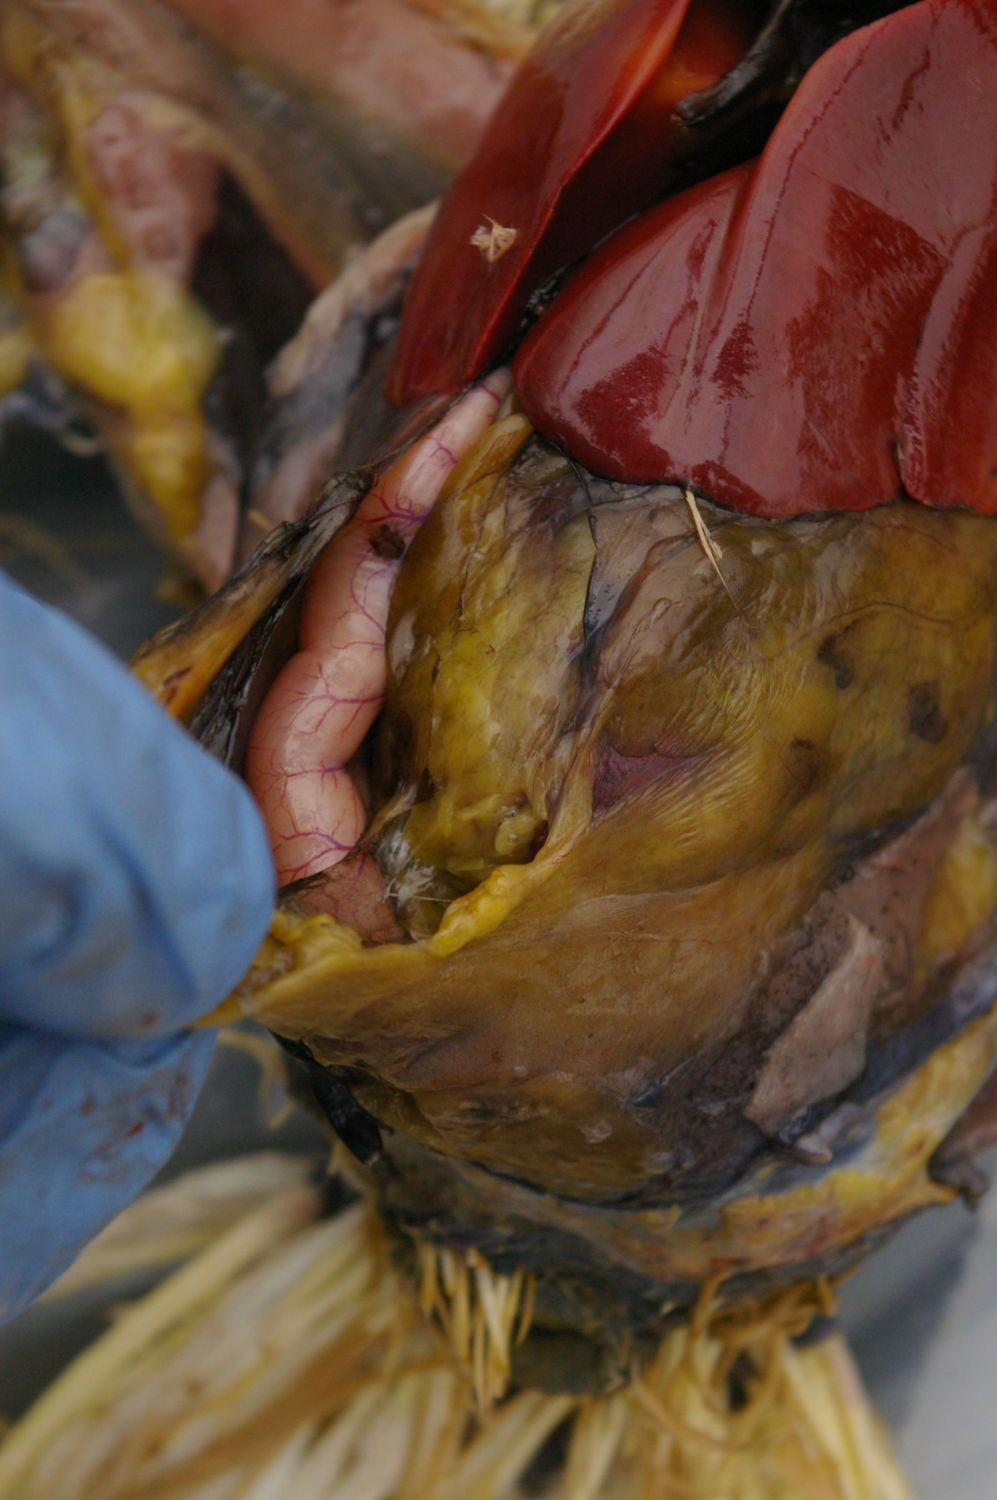 Next layer of body cavity opened. Bowel coming into view